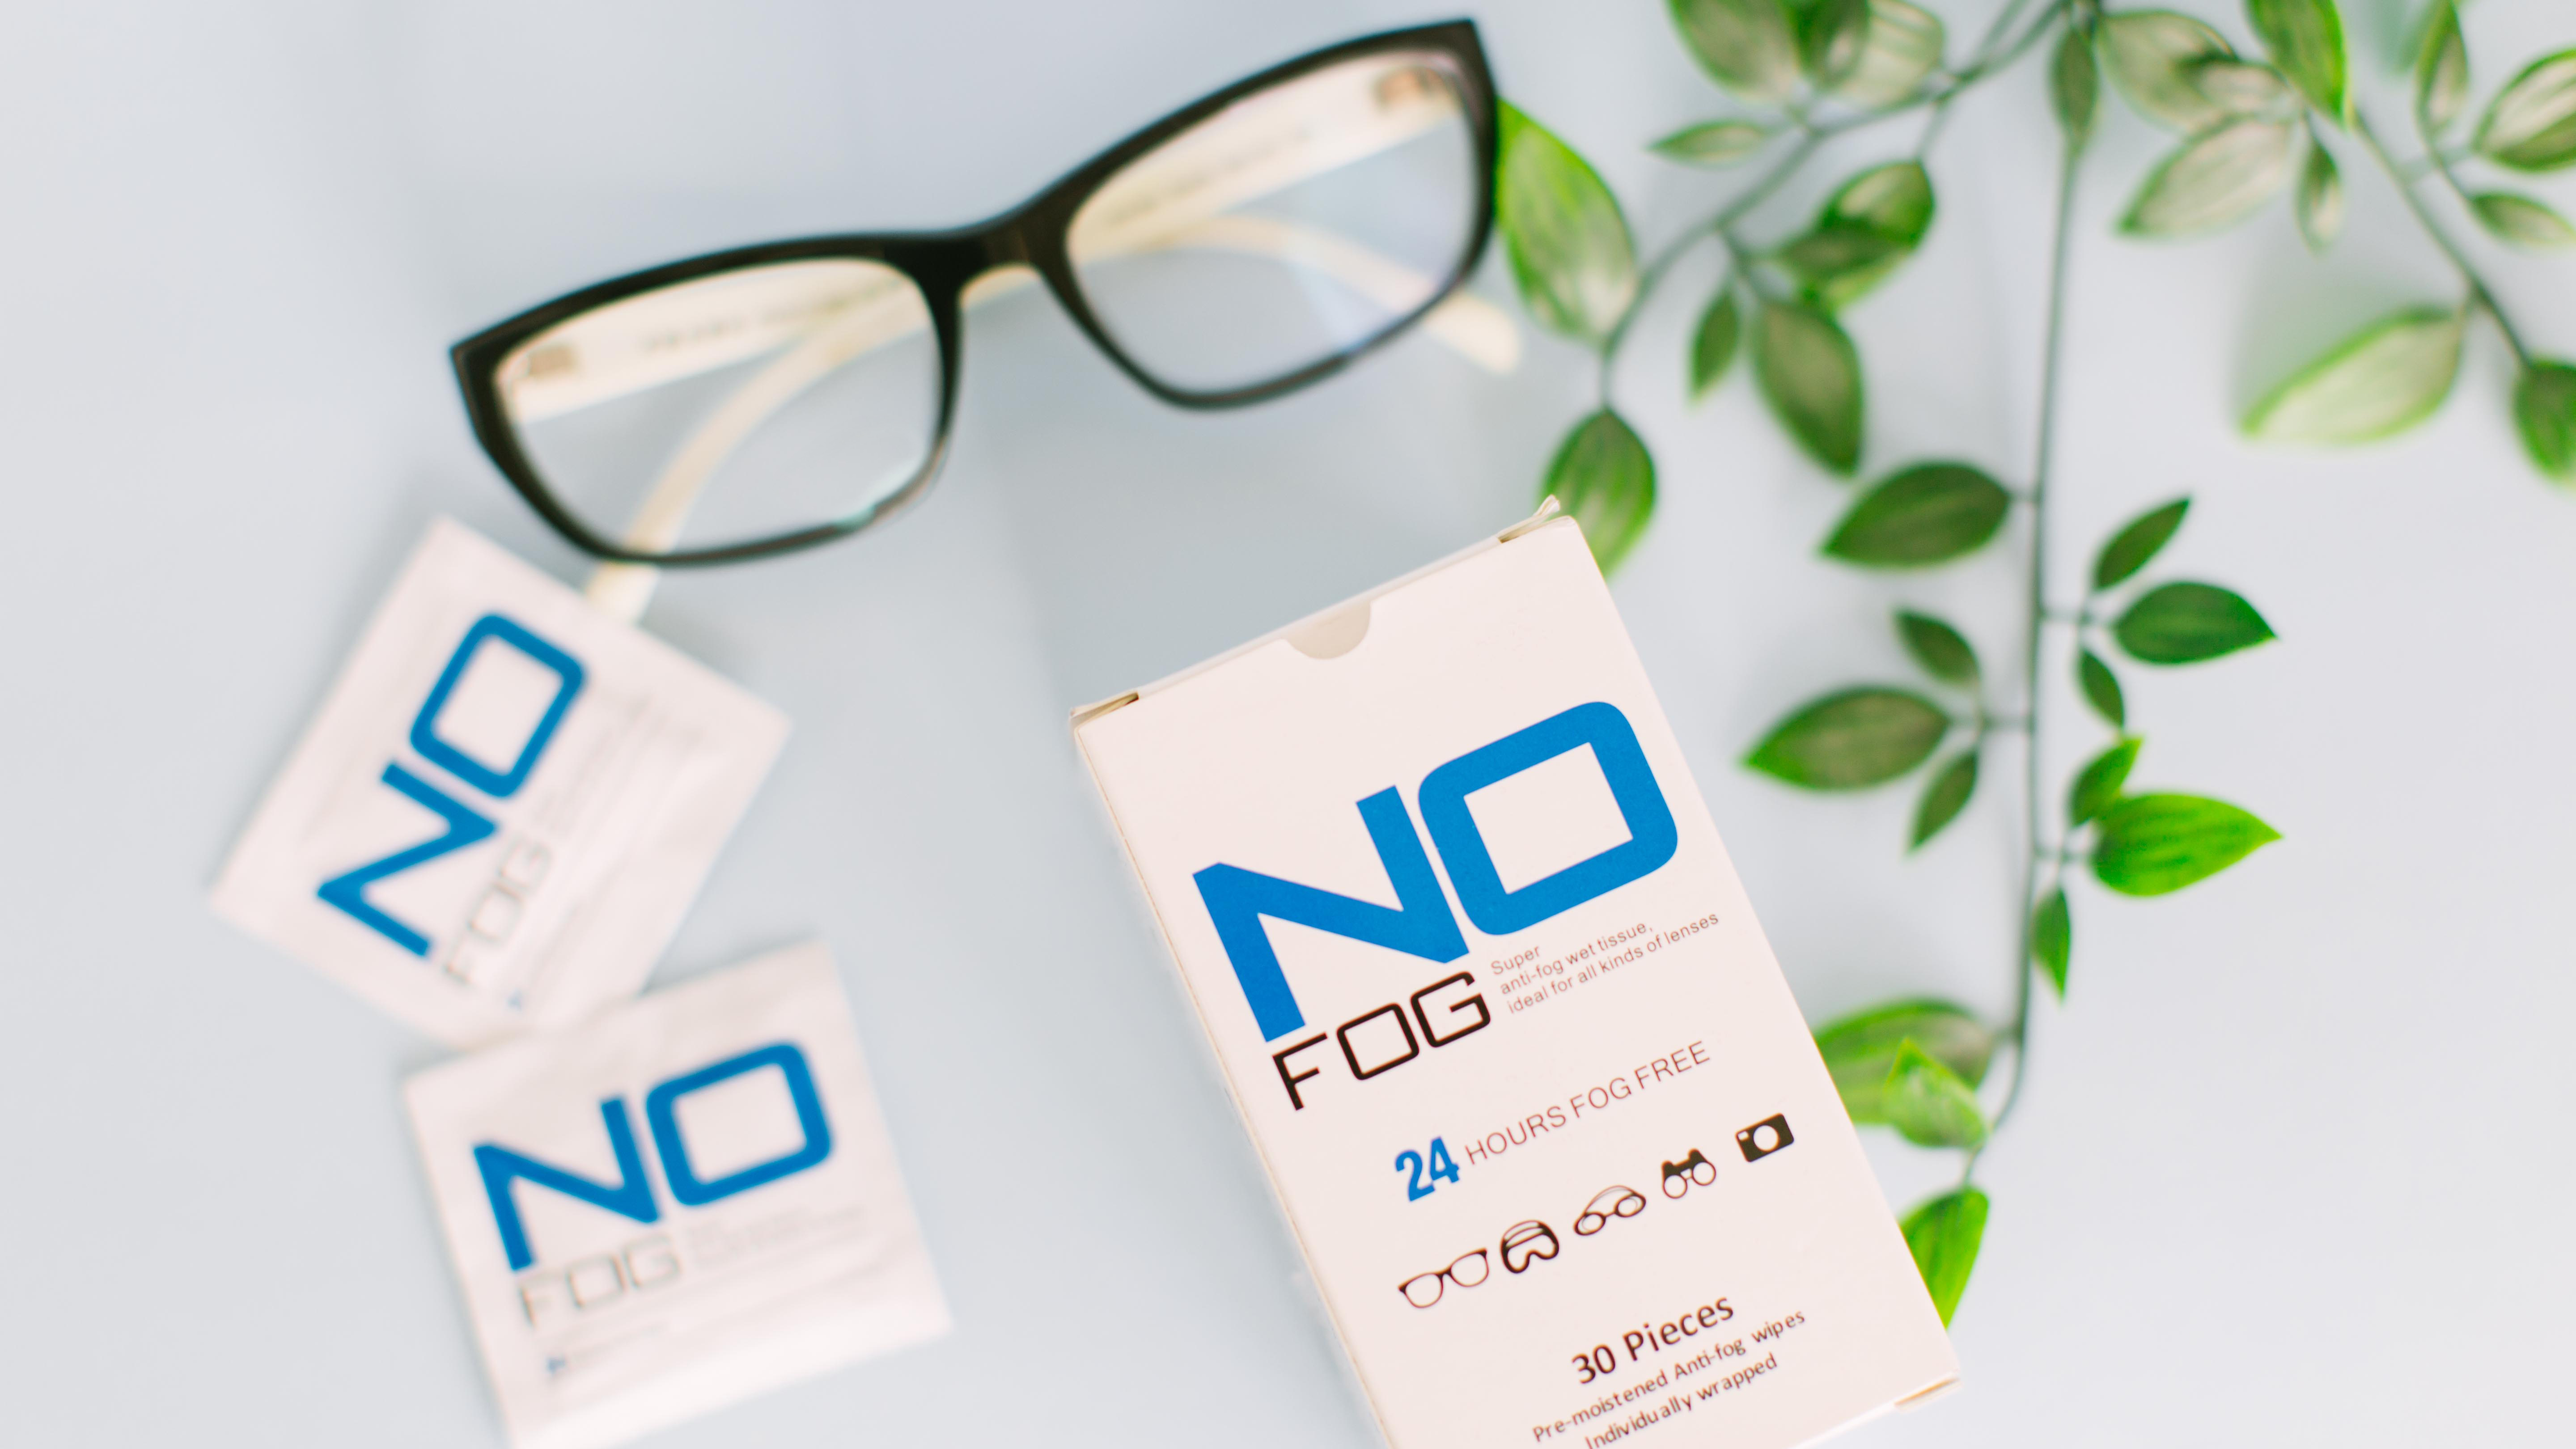 A box of anti-fog wet tissue with some anti-fog sachets  & a pair of black optical glasses